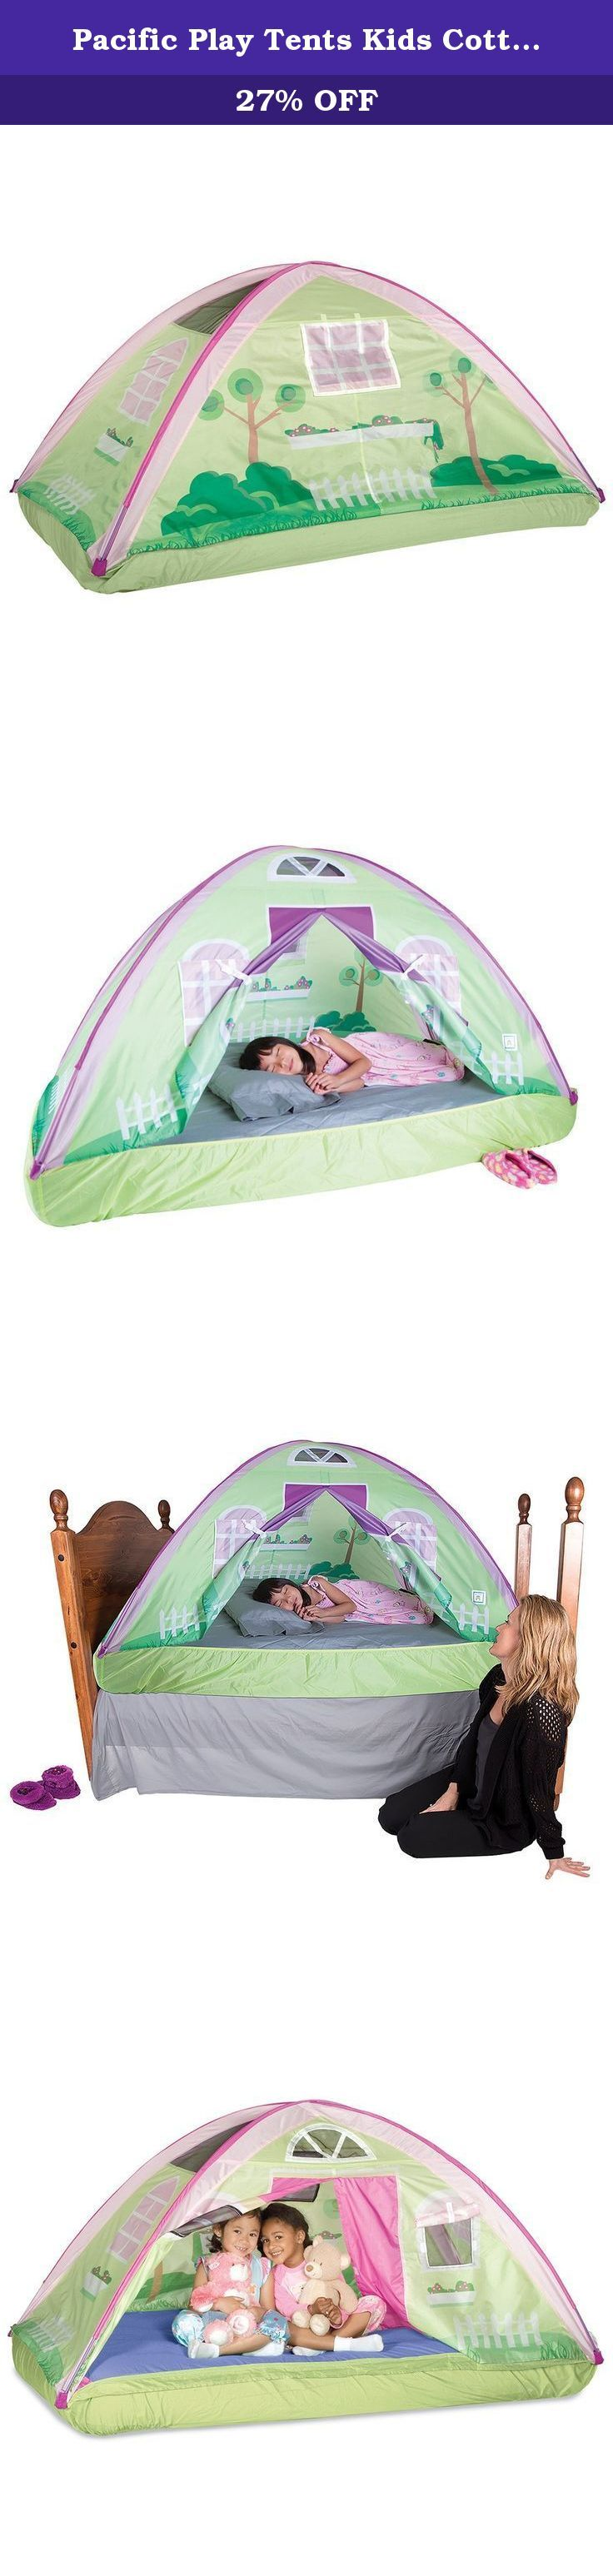 Bed Tent For Full Size Mattress Such A Pretty Idea My Daughter